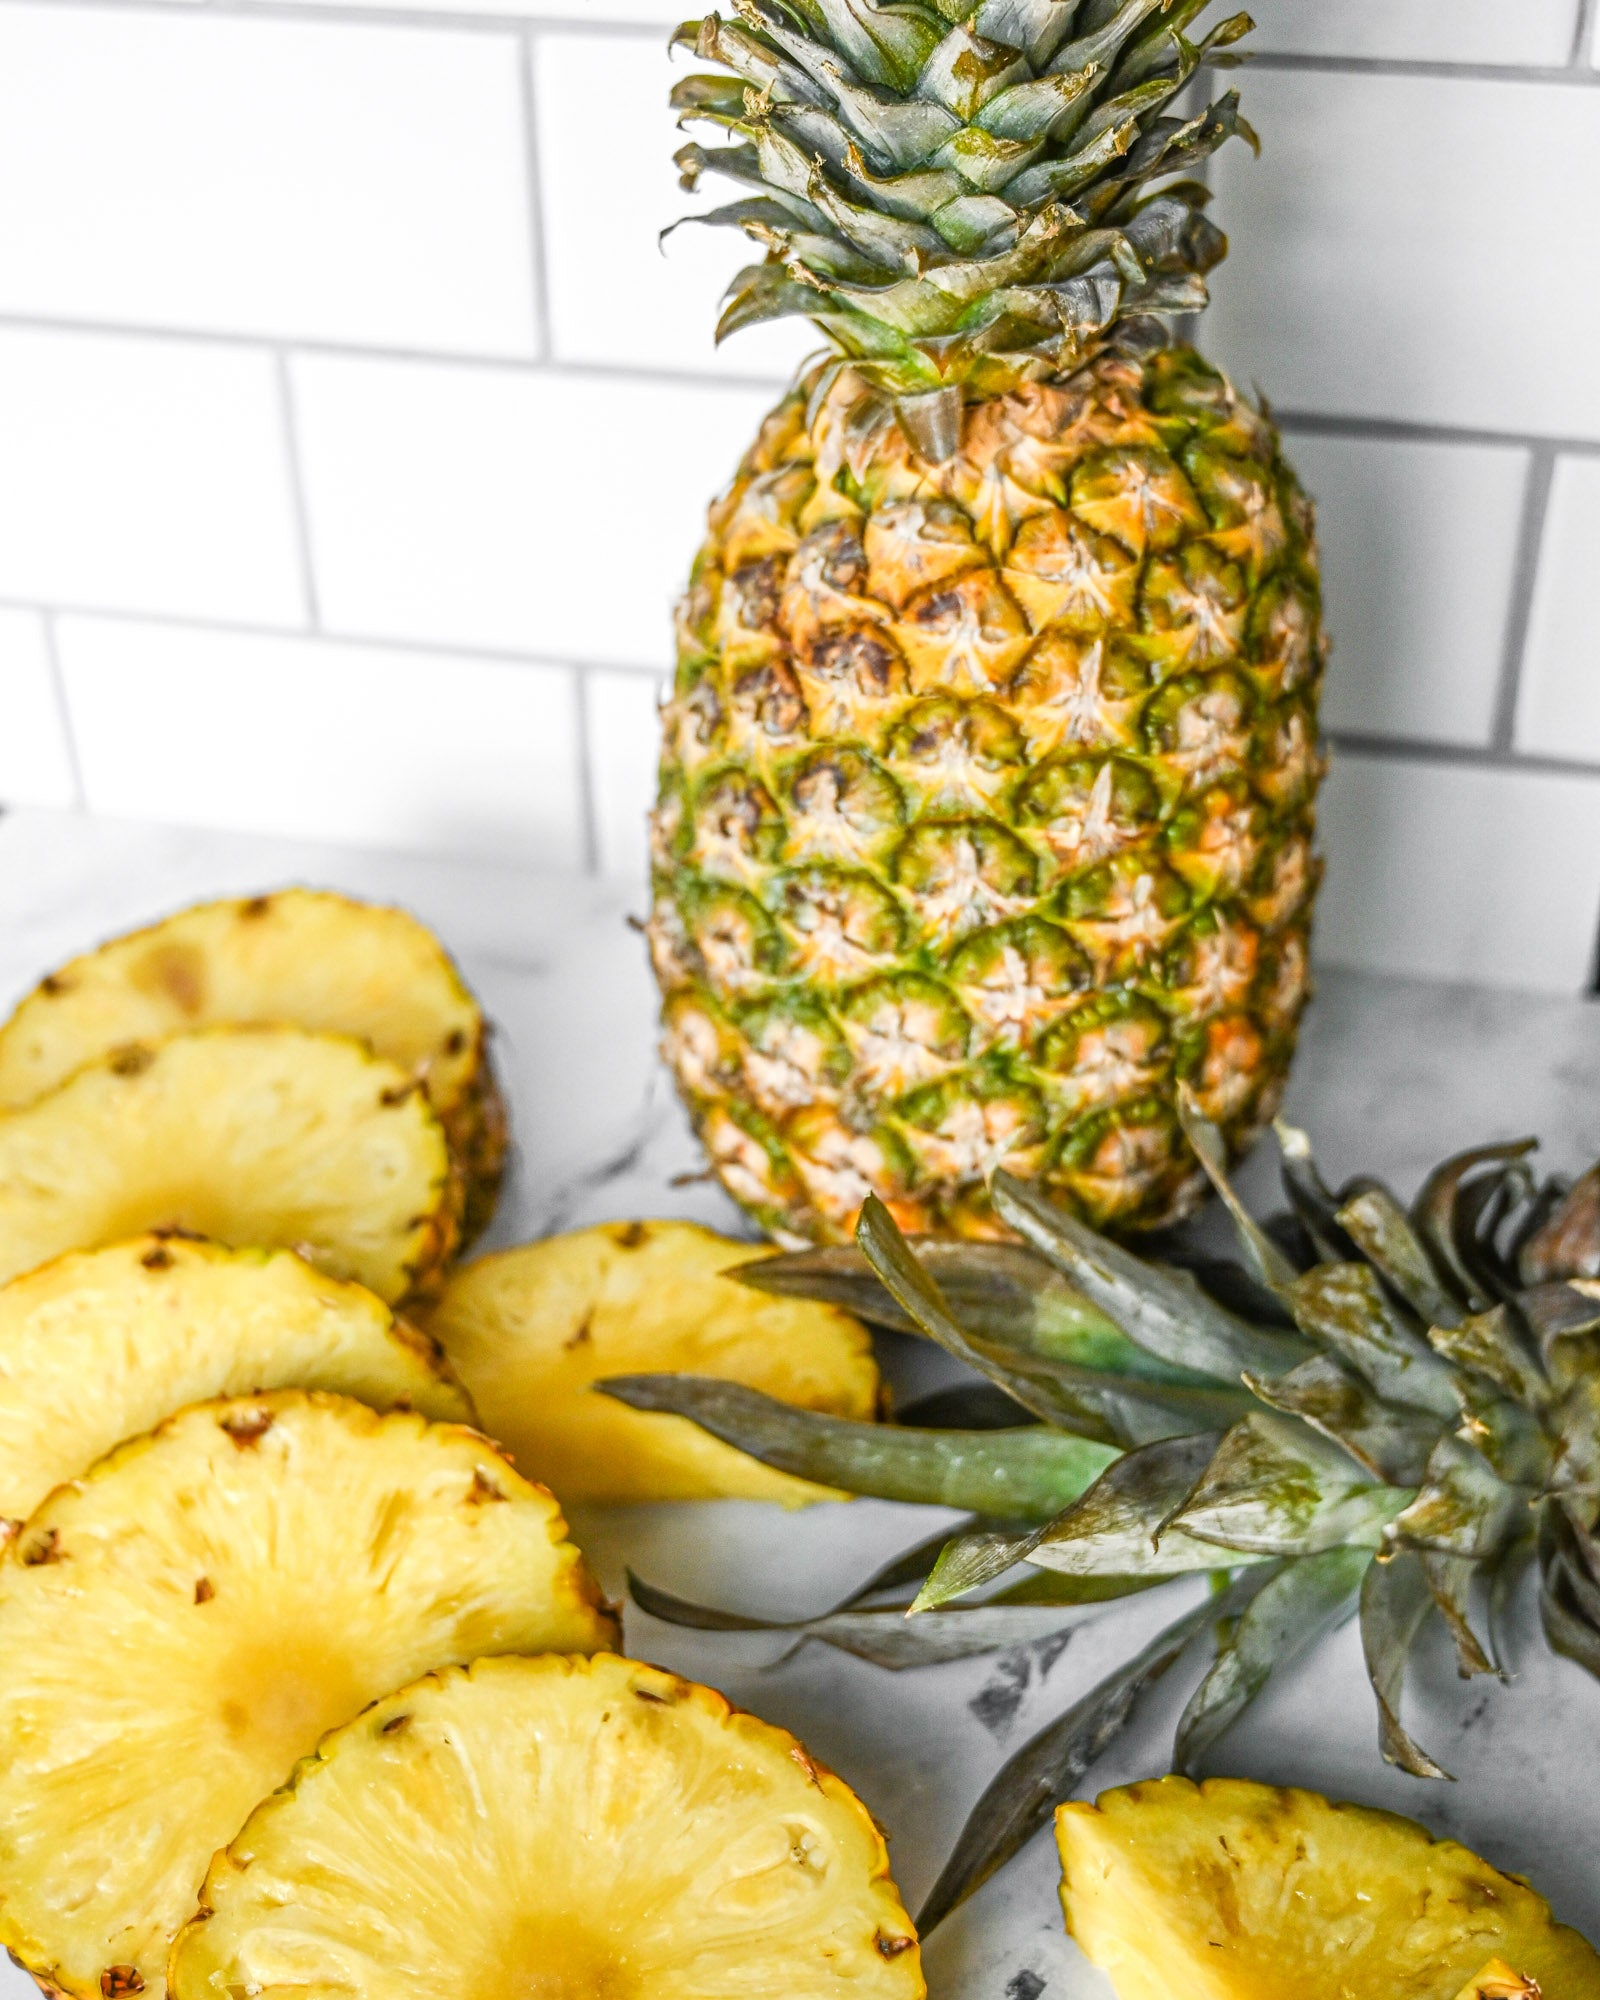 Is Pineapple Safe for Dogs